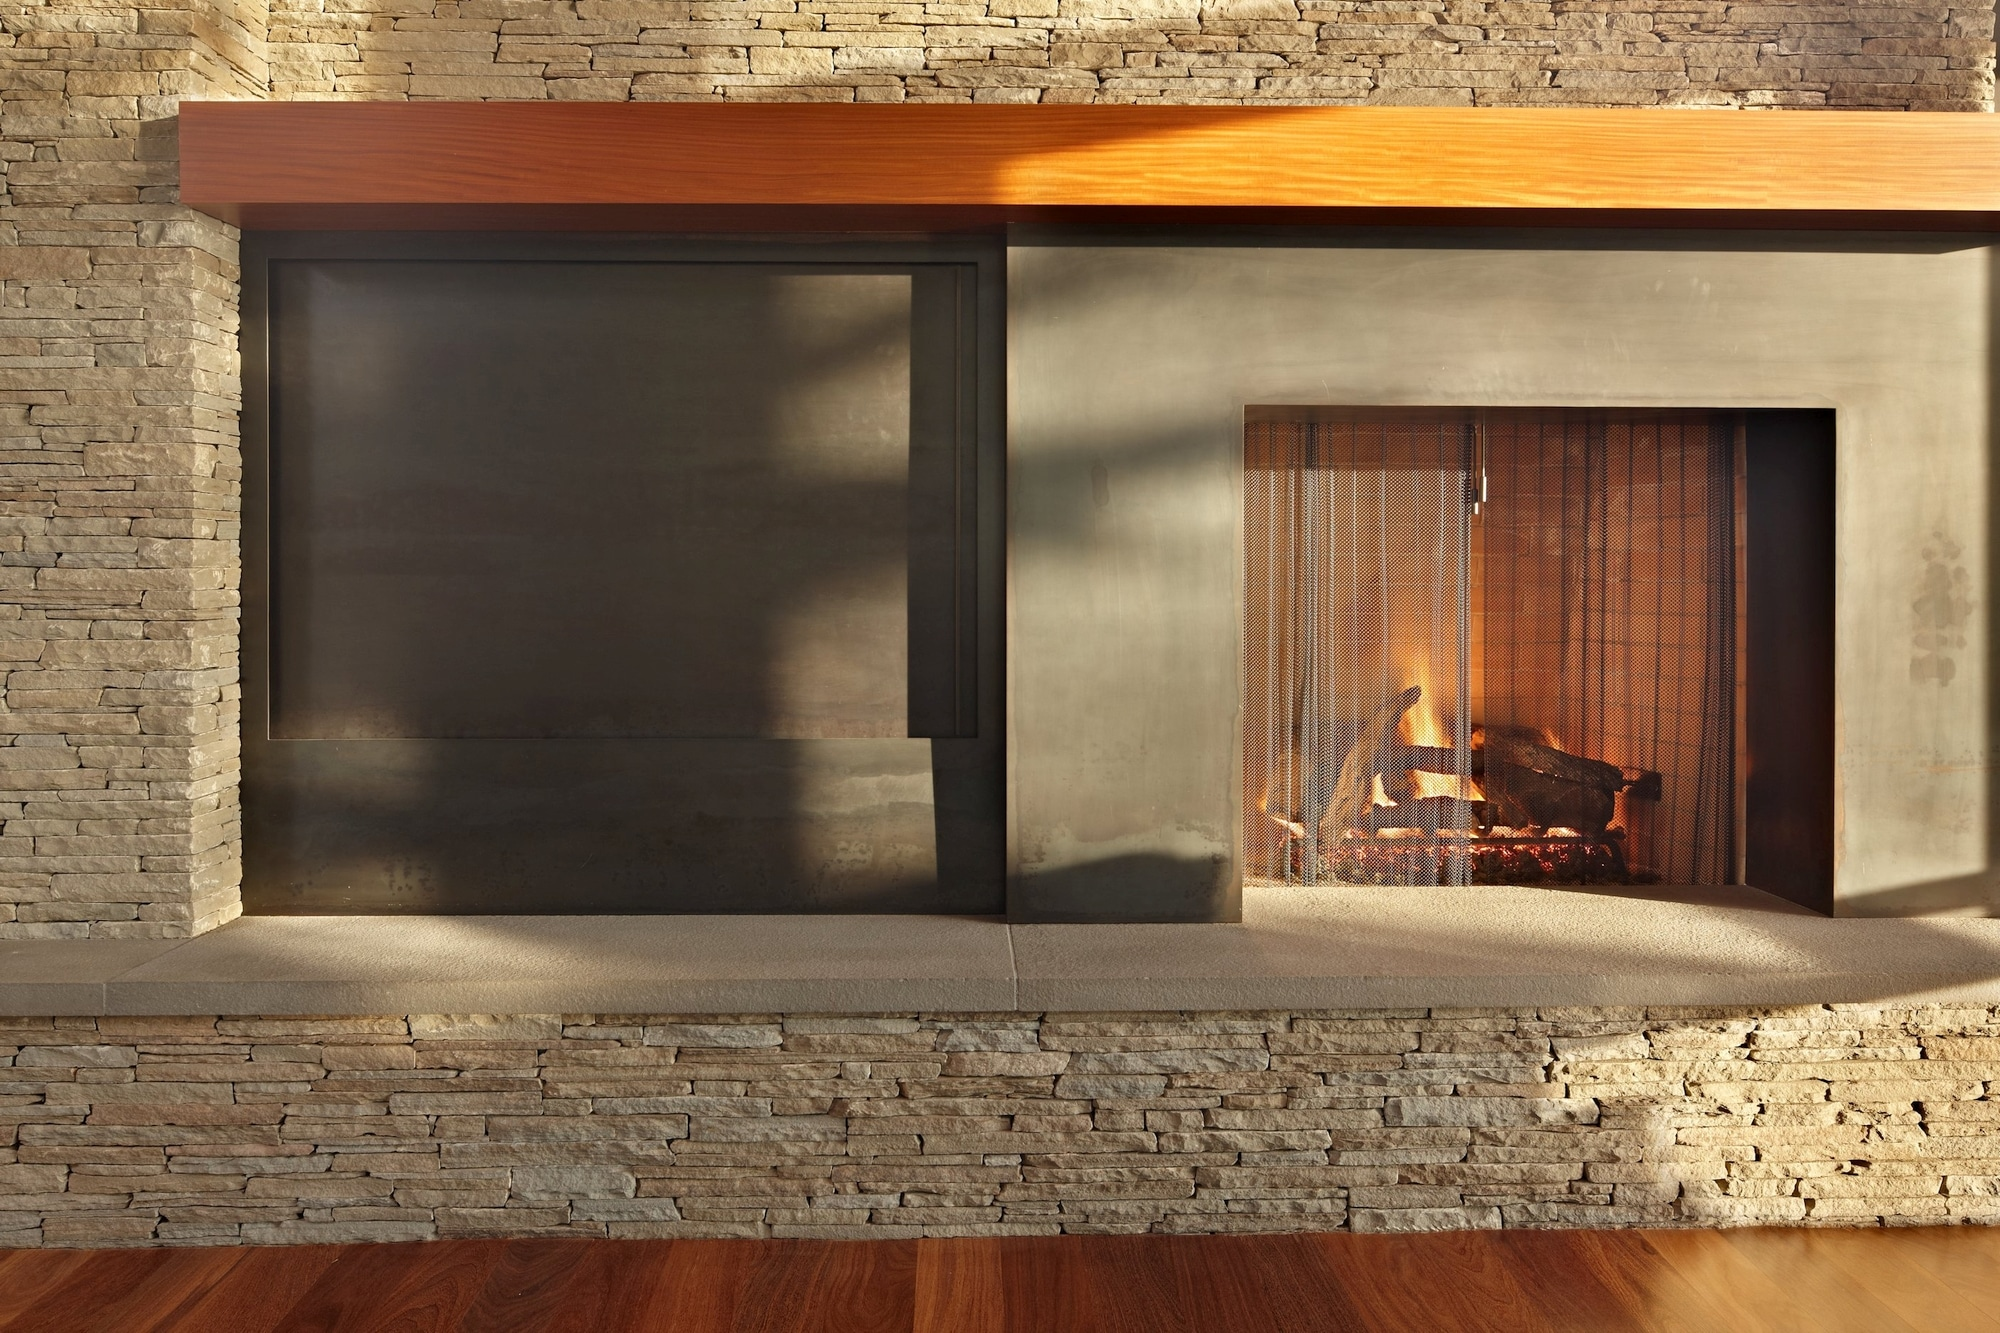 Modern Tv Stand Fireplace Ideas: From Traditional To Modern And More